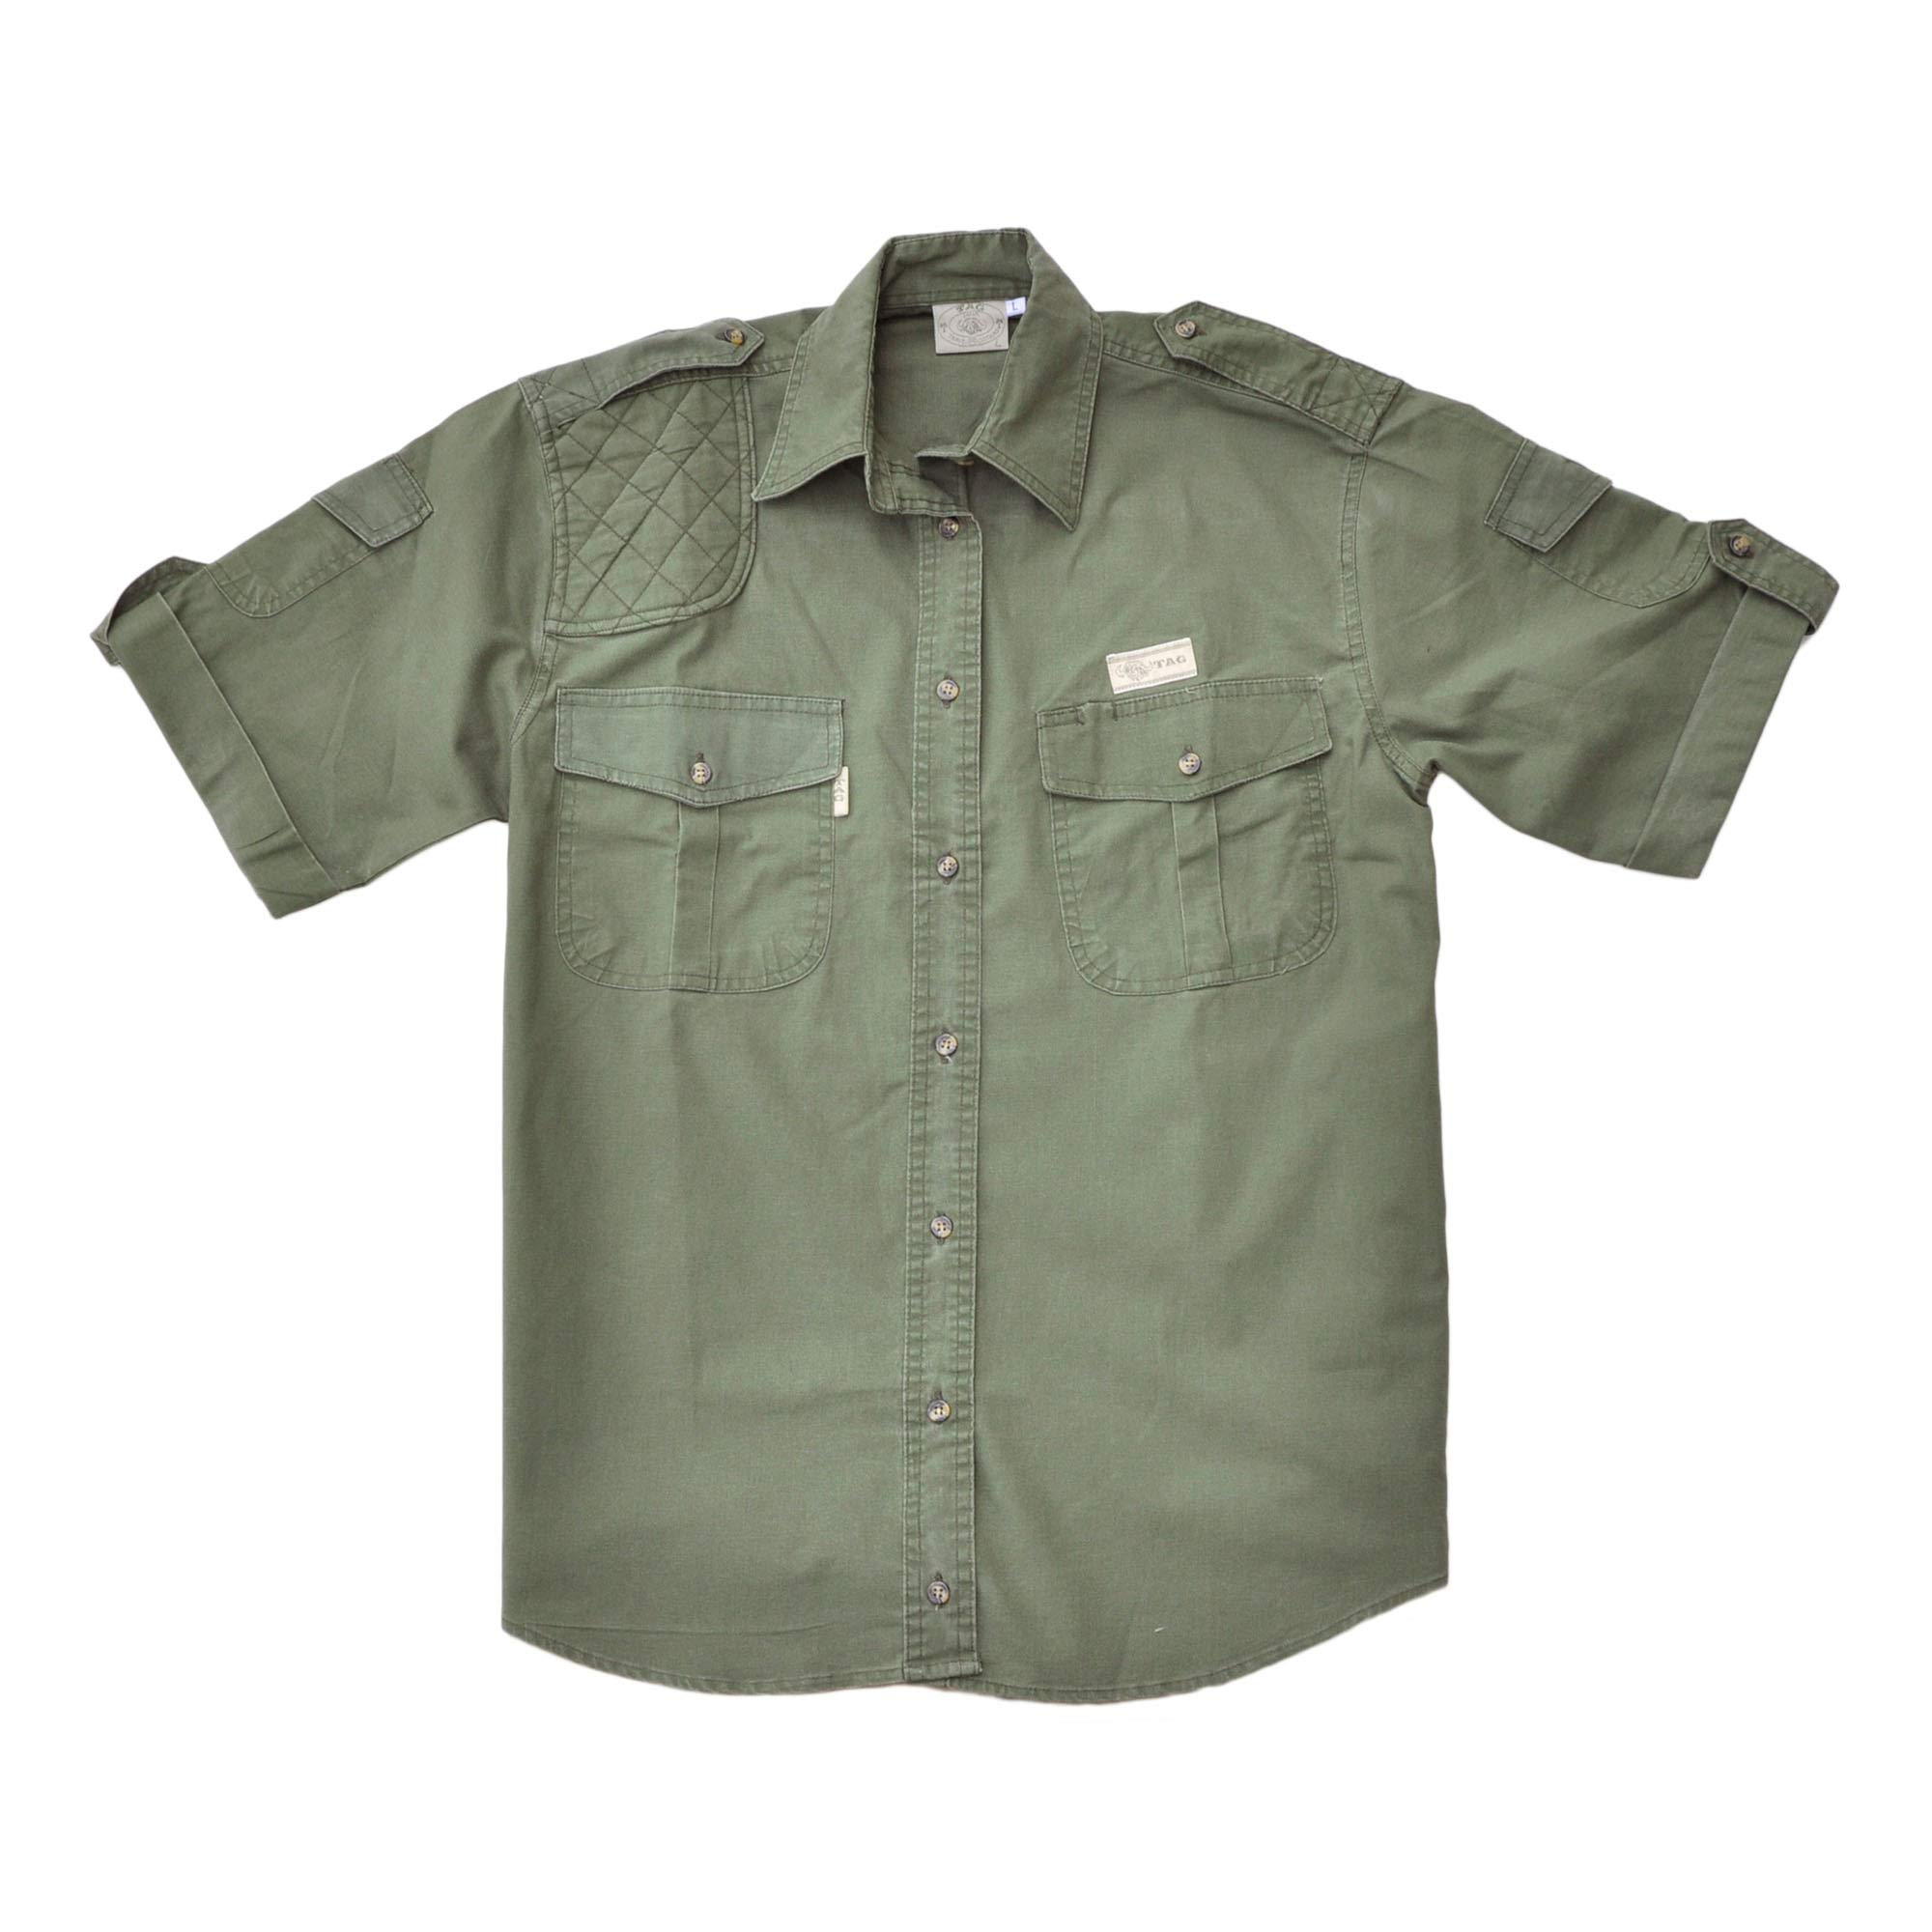 Tag Safari Shooter Shirt for Women Short Sleeve, 100% Cotton for Hunters Outdoor Activities by Tag Safari